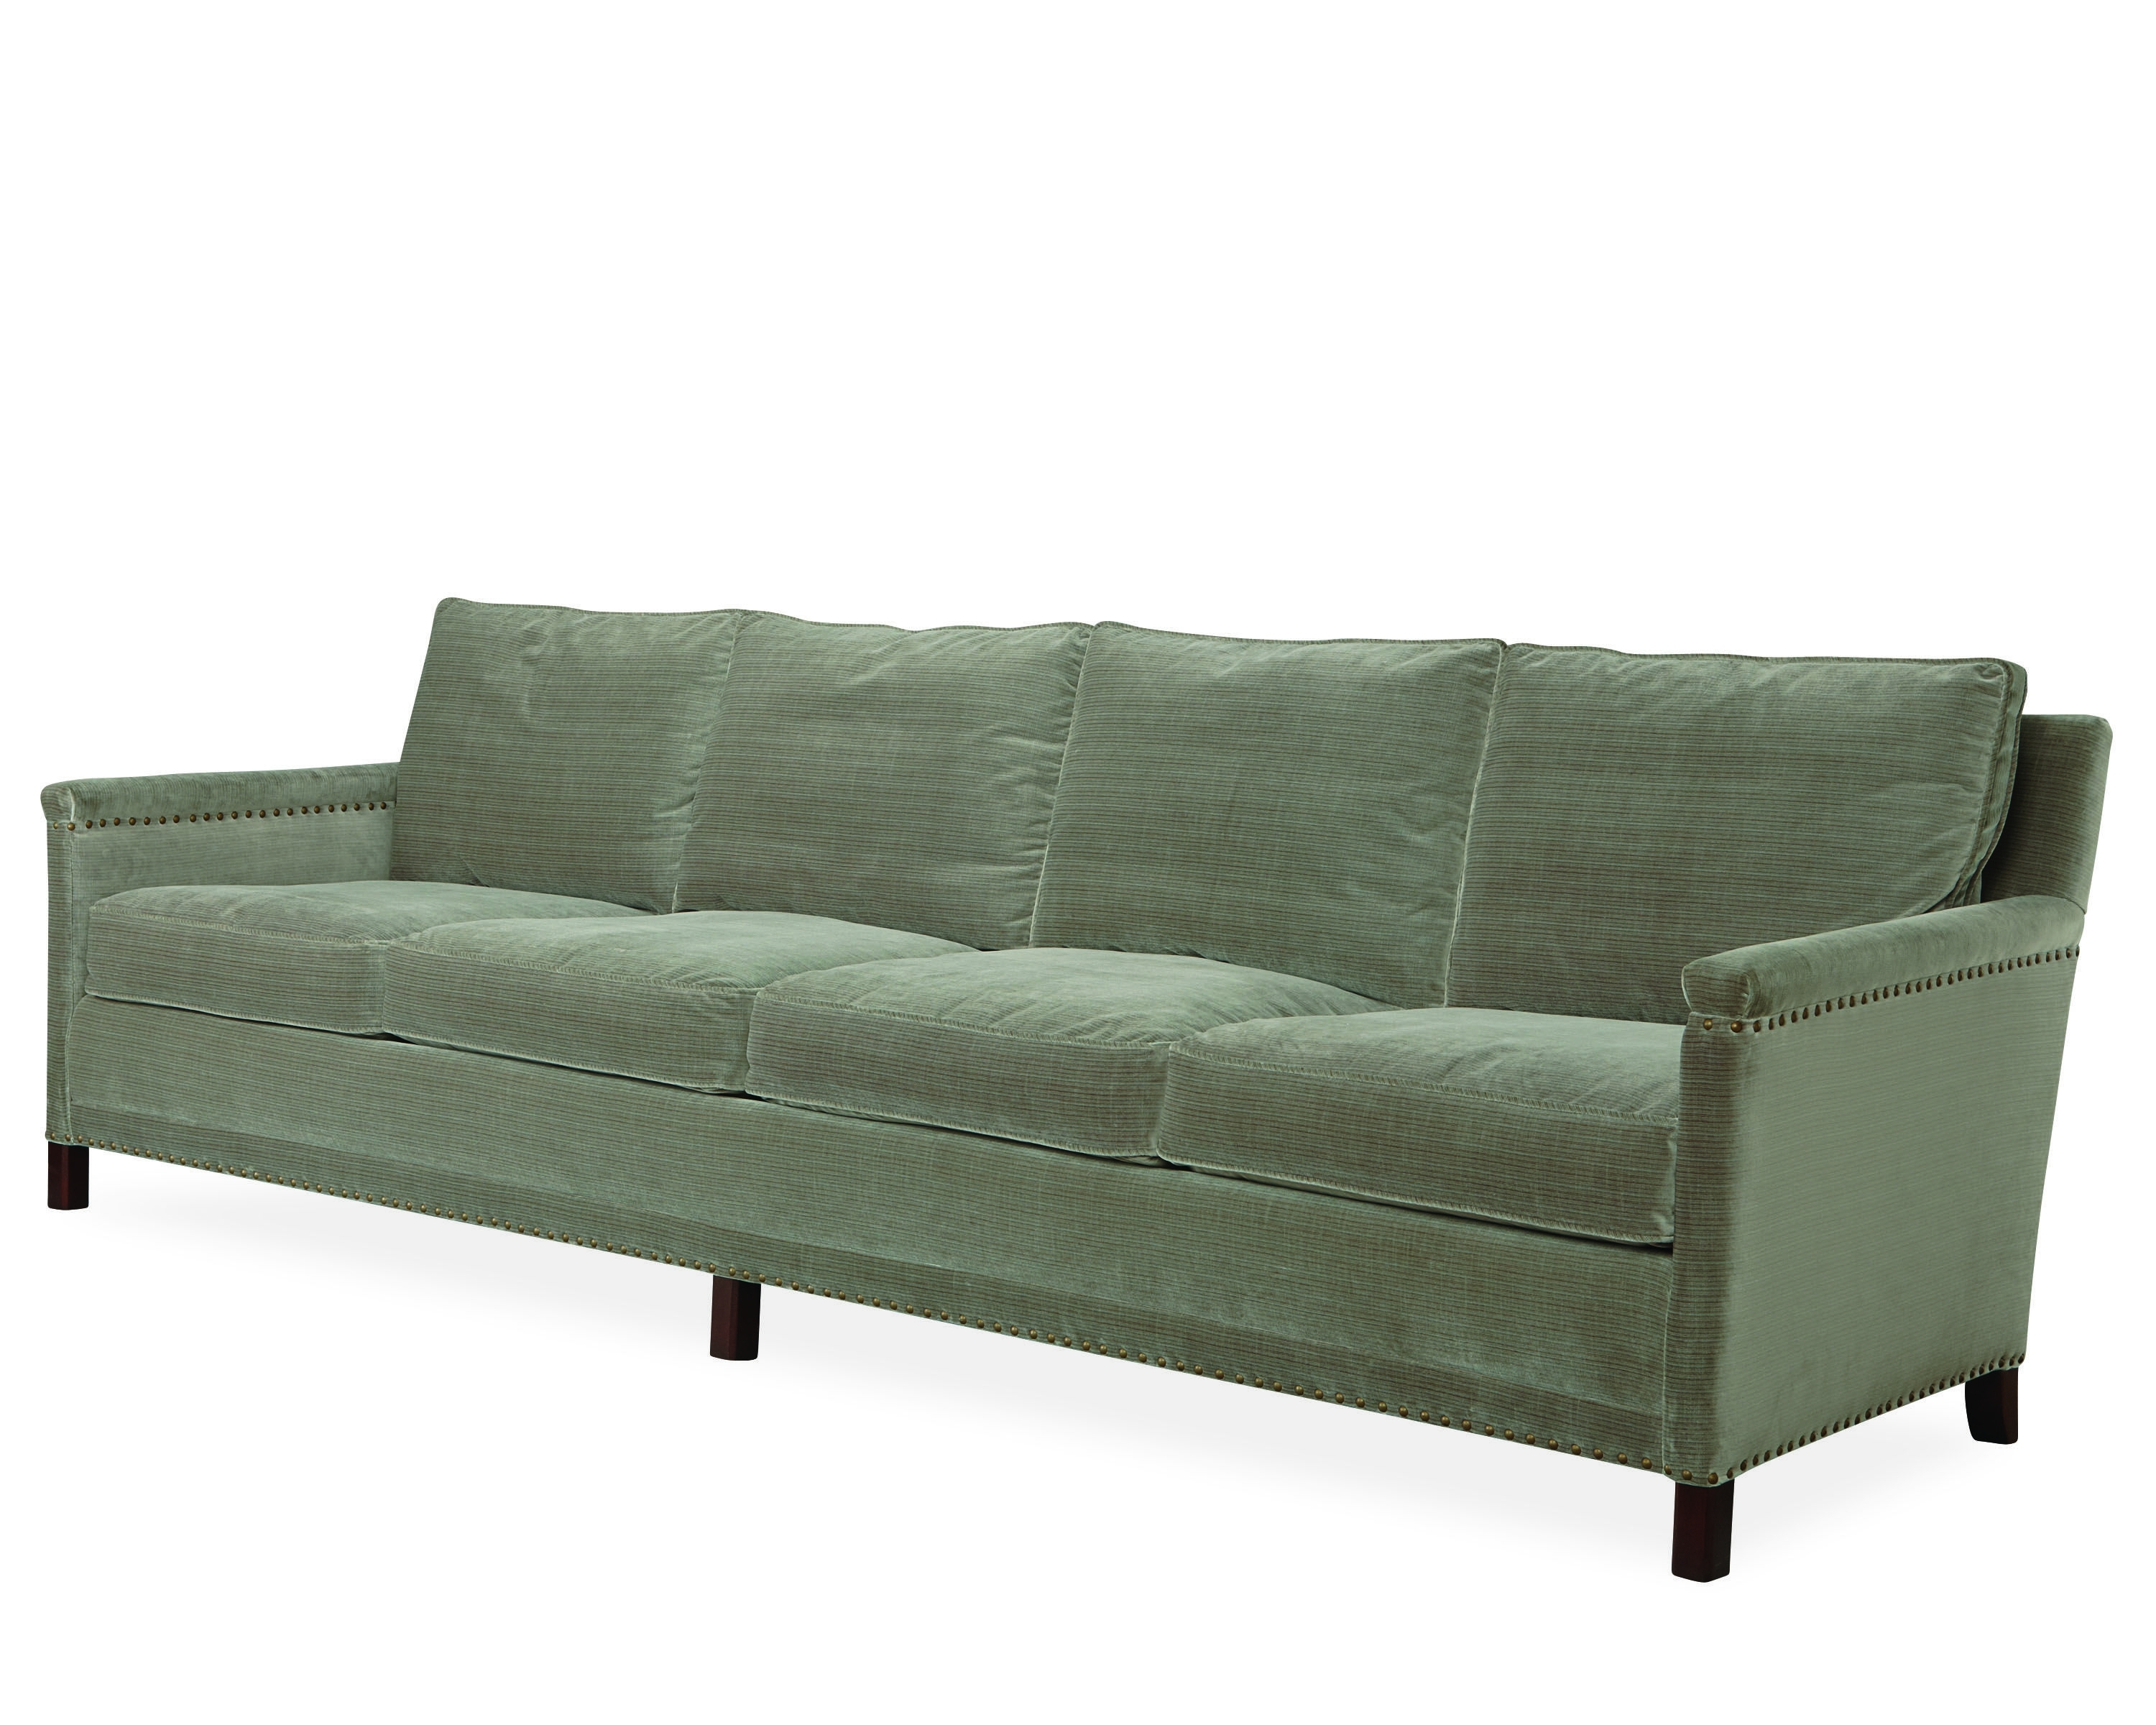 Lee // Sofas With Regard To Lee Industries Sectional Sofas (View 19 of 20)